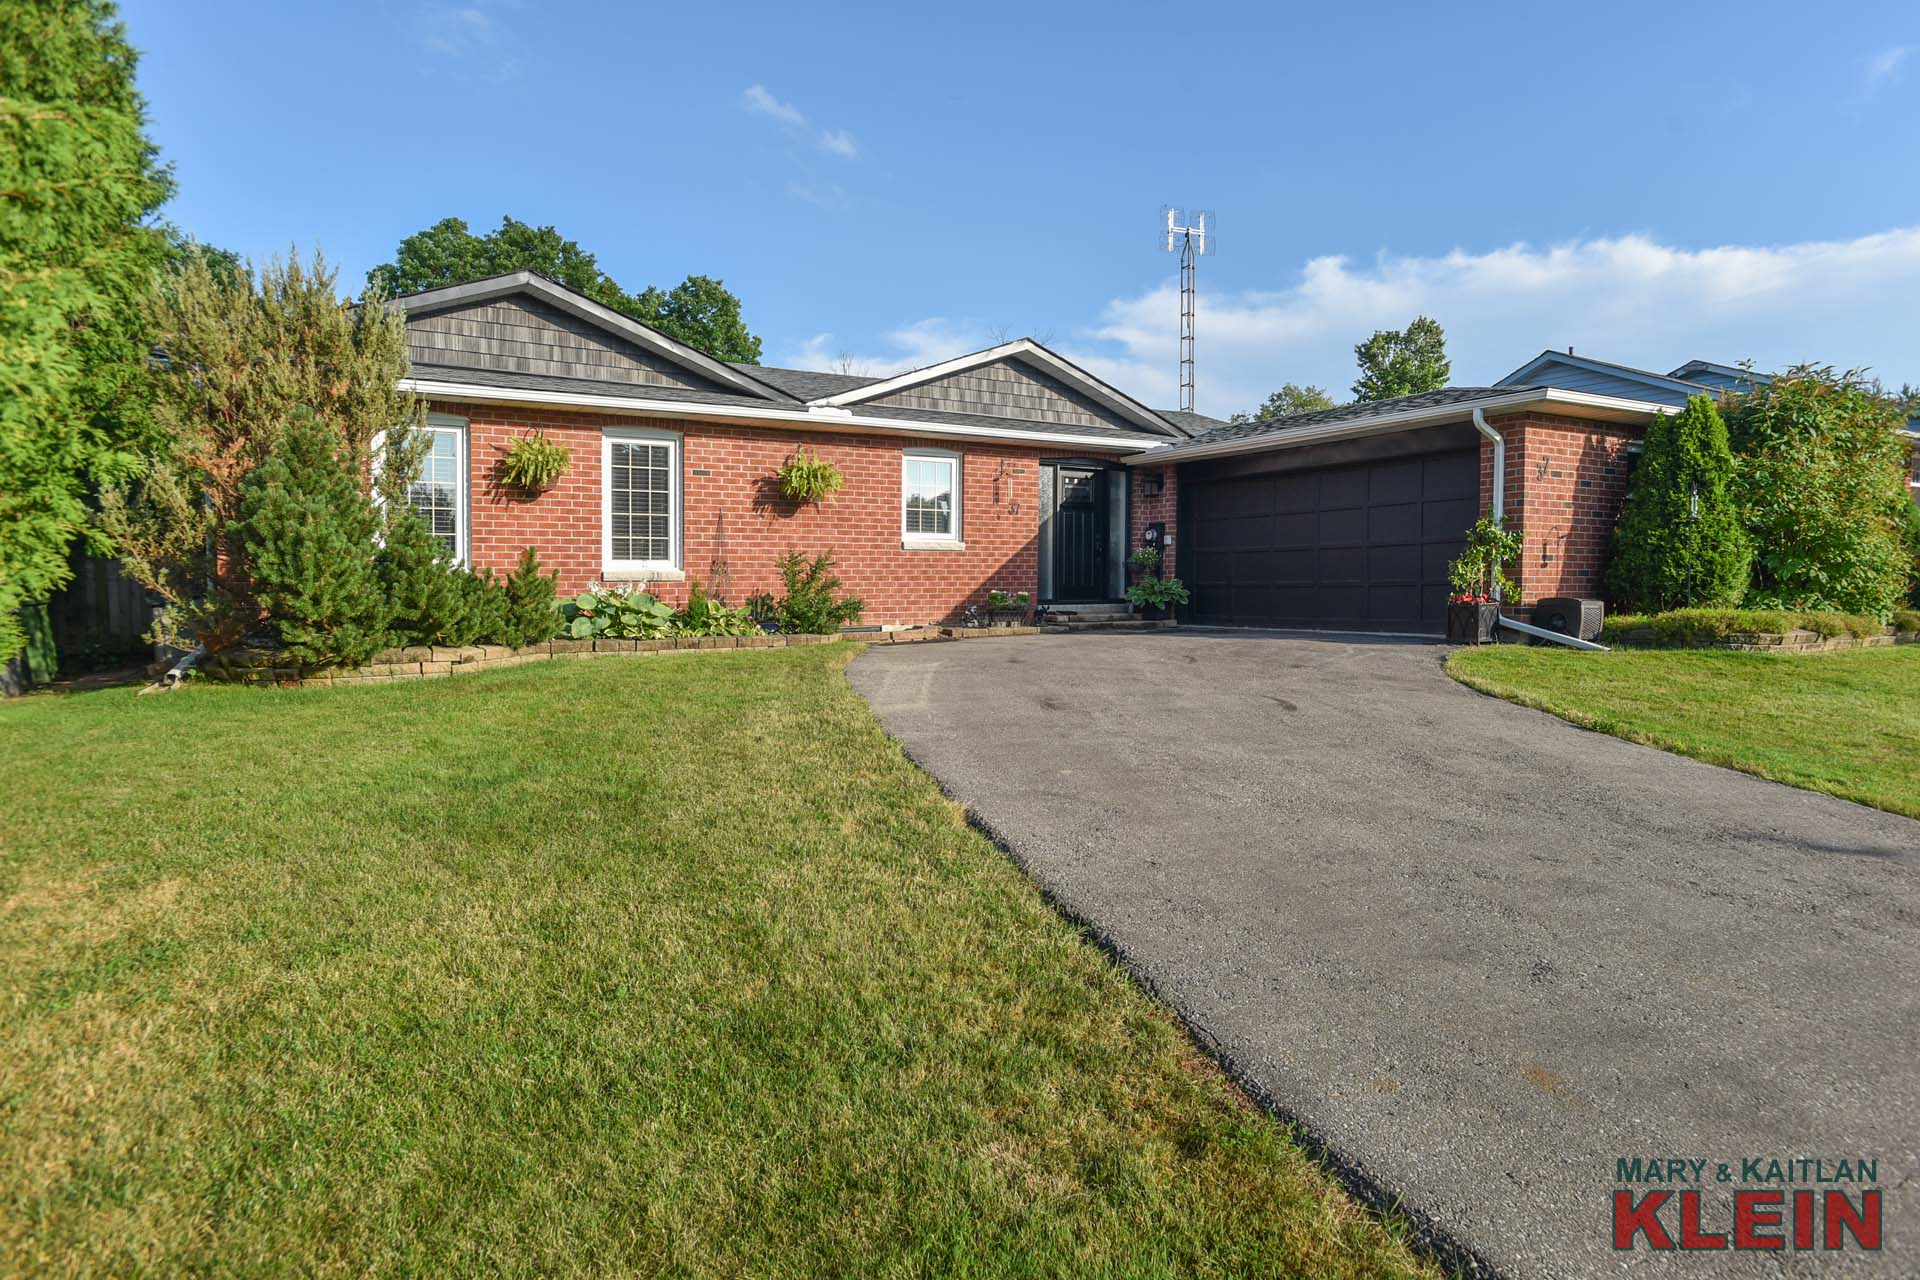 37 McClellan Road, Alton